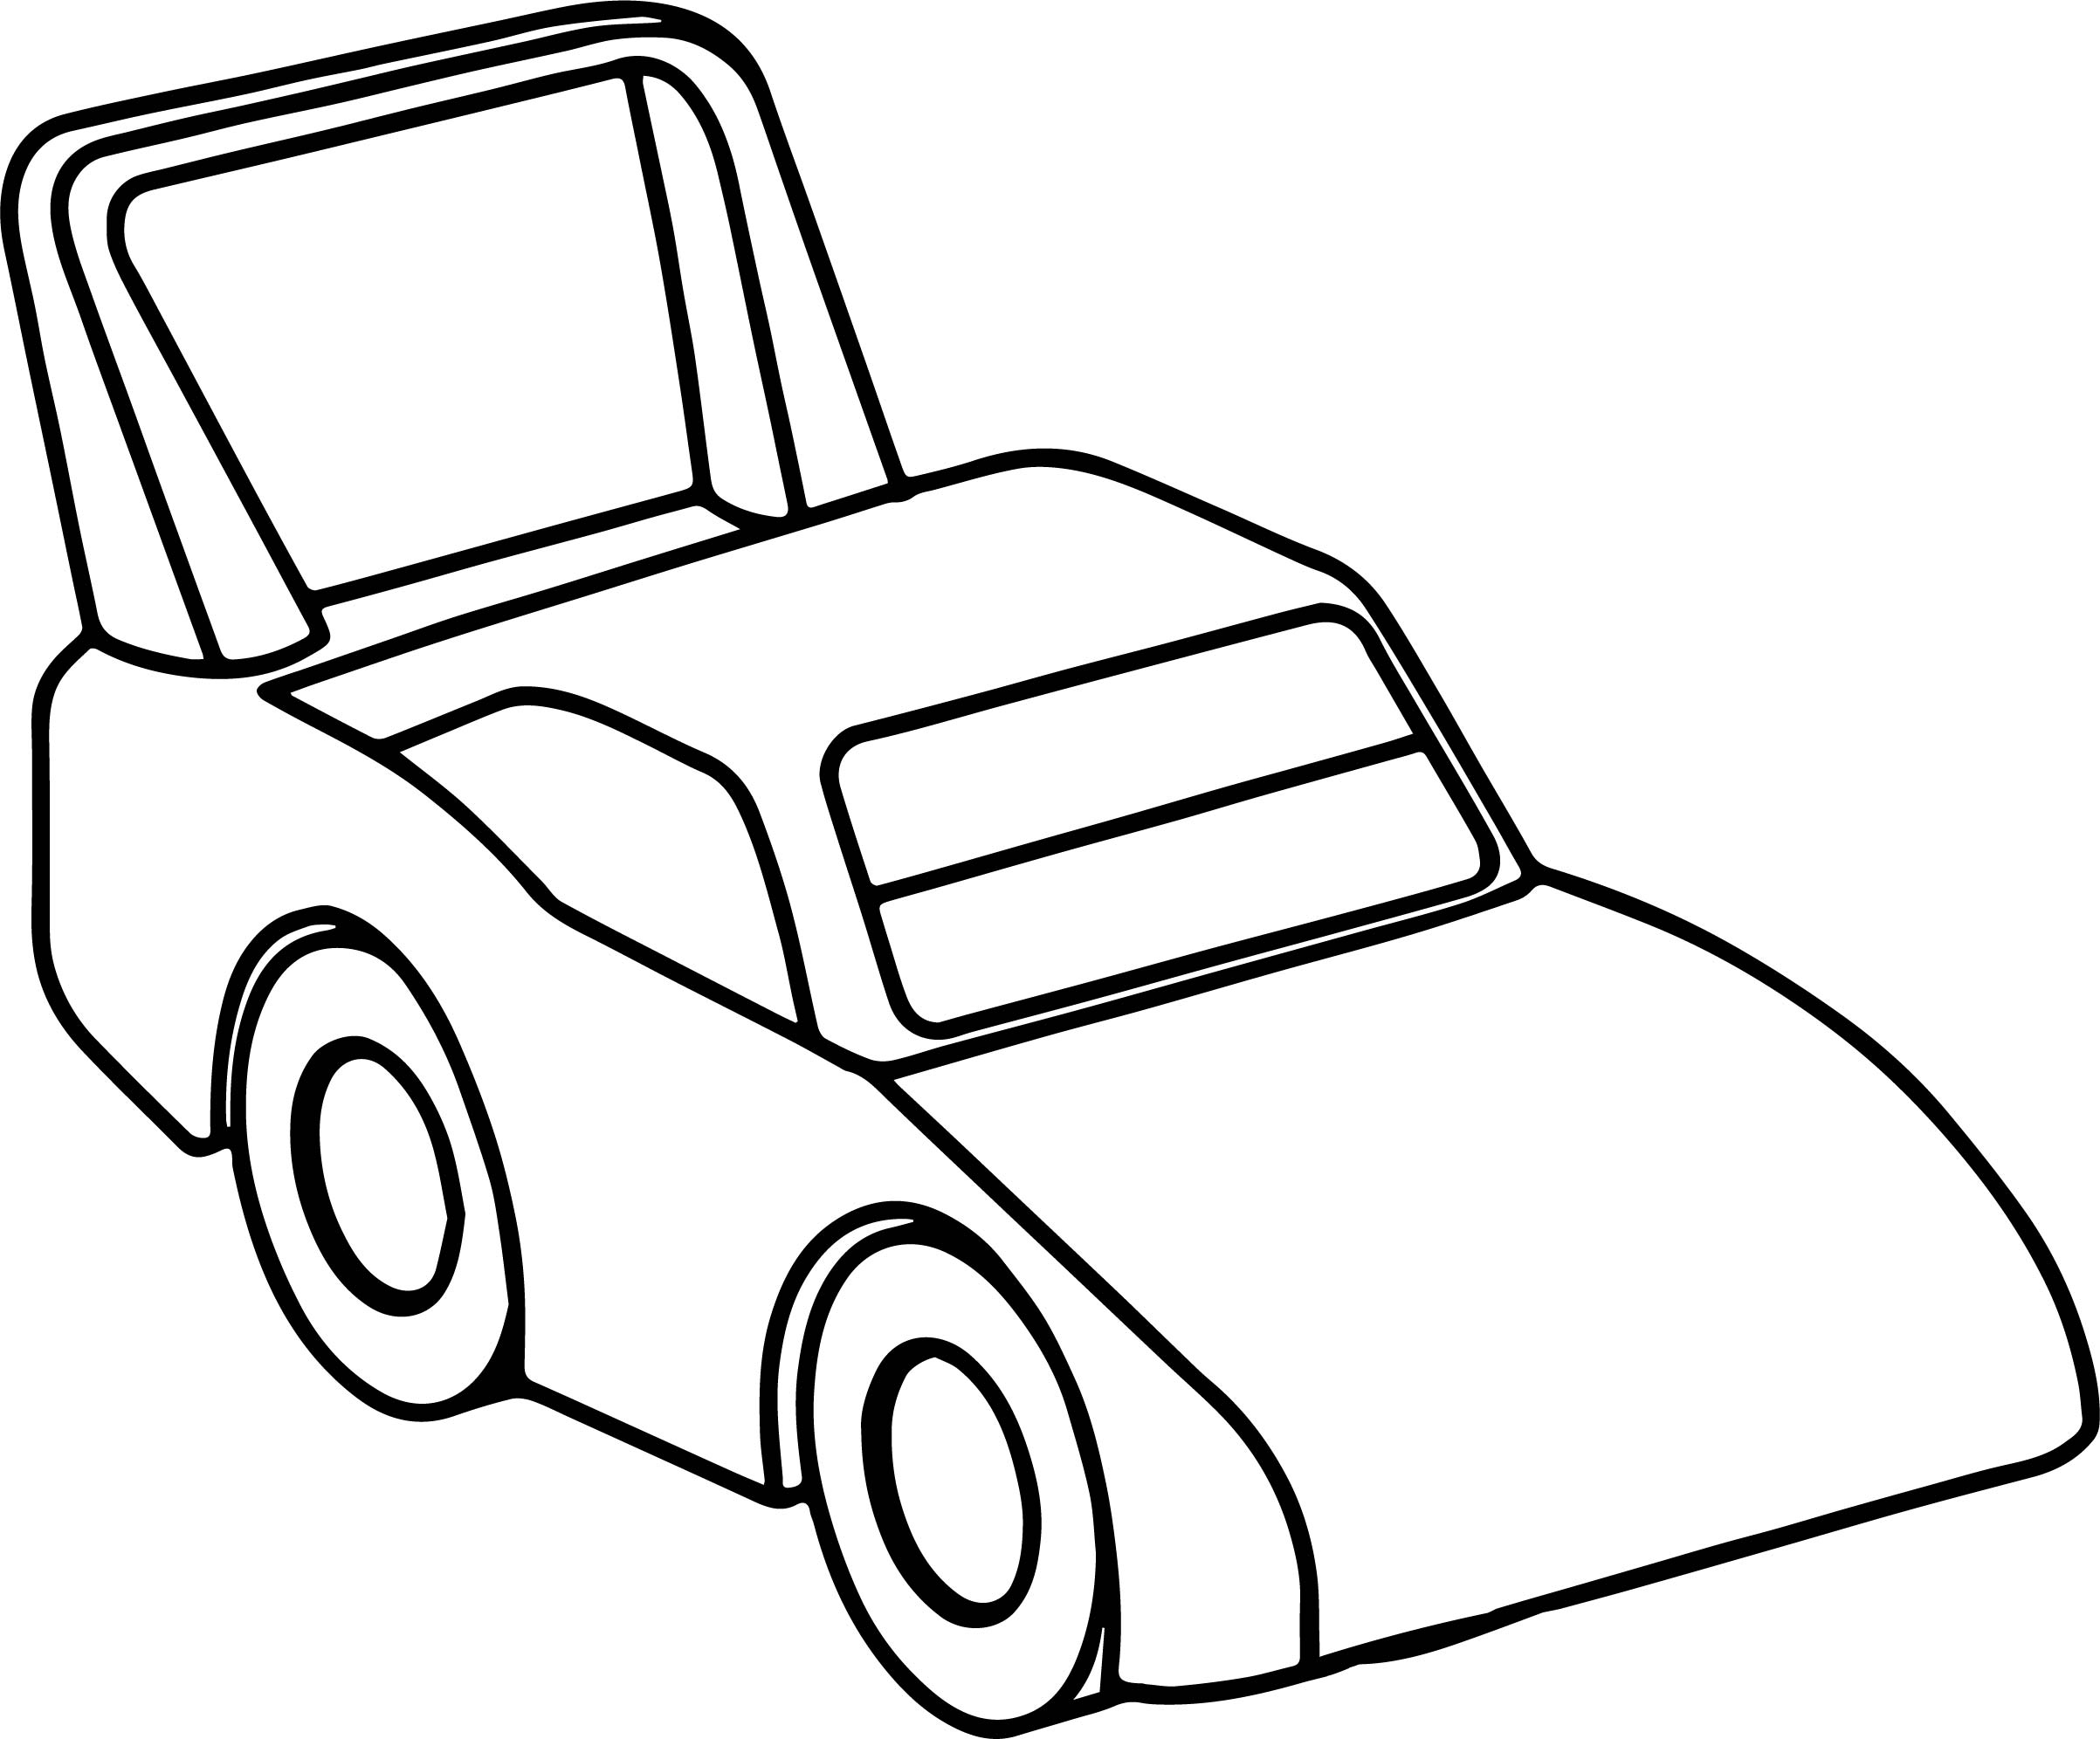 Race Car Coloring Pages | Free download best Race Car Coloring Pages ...